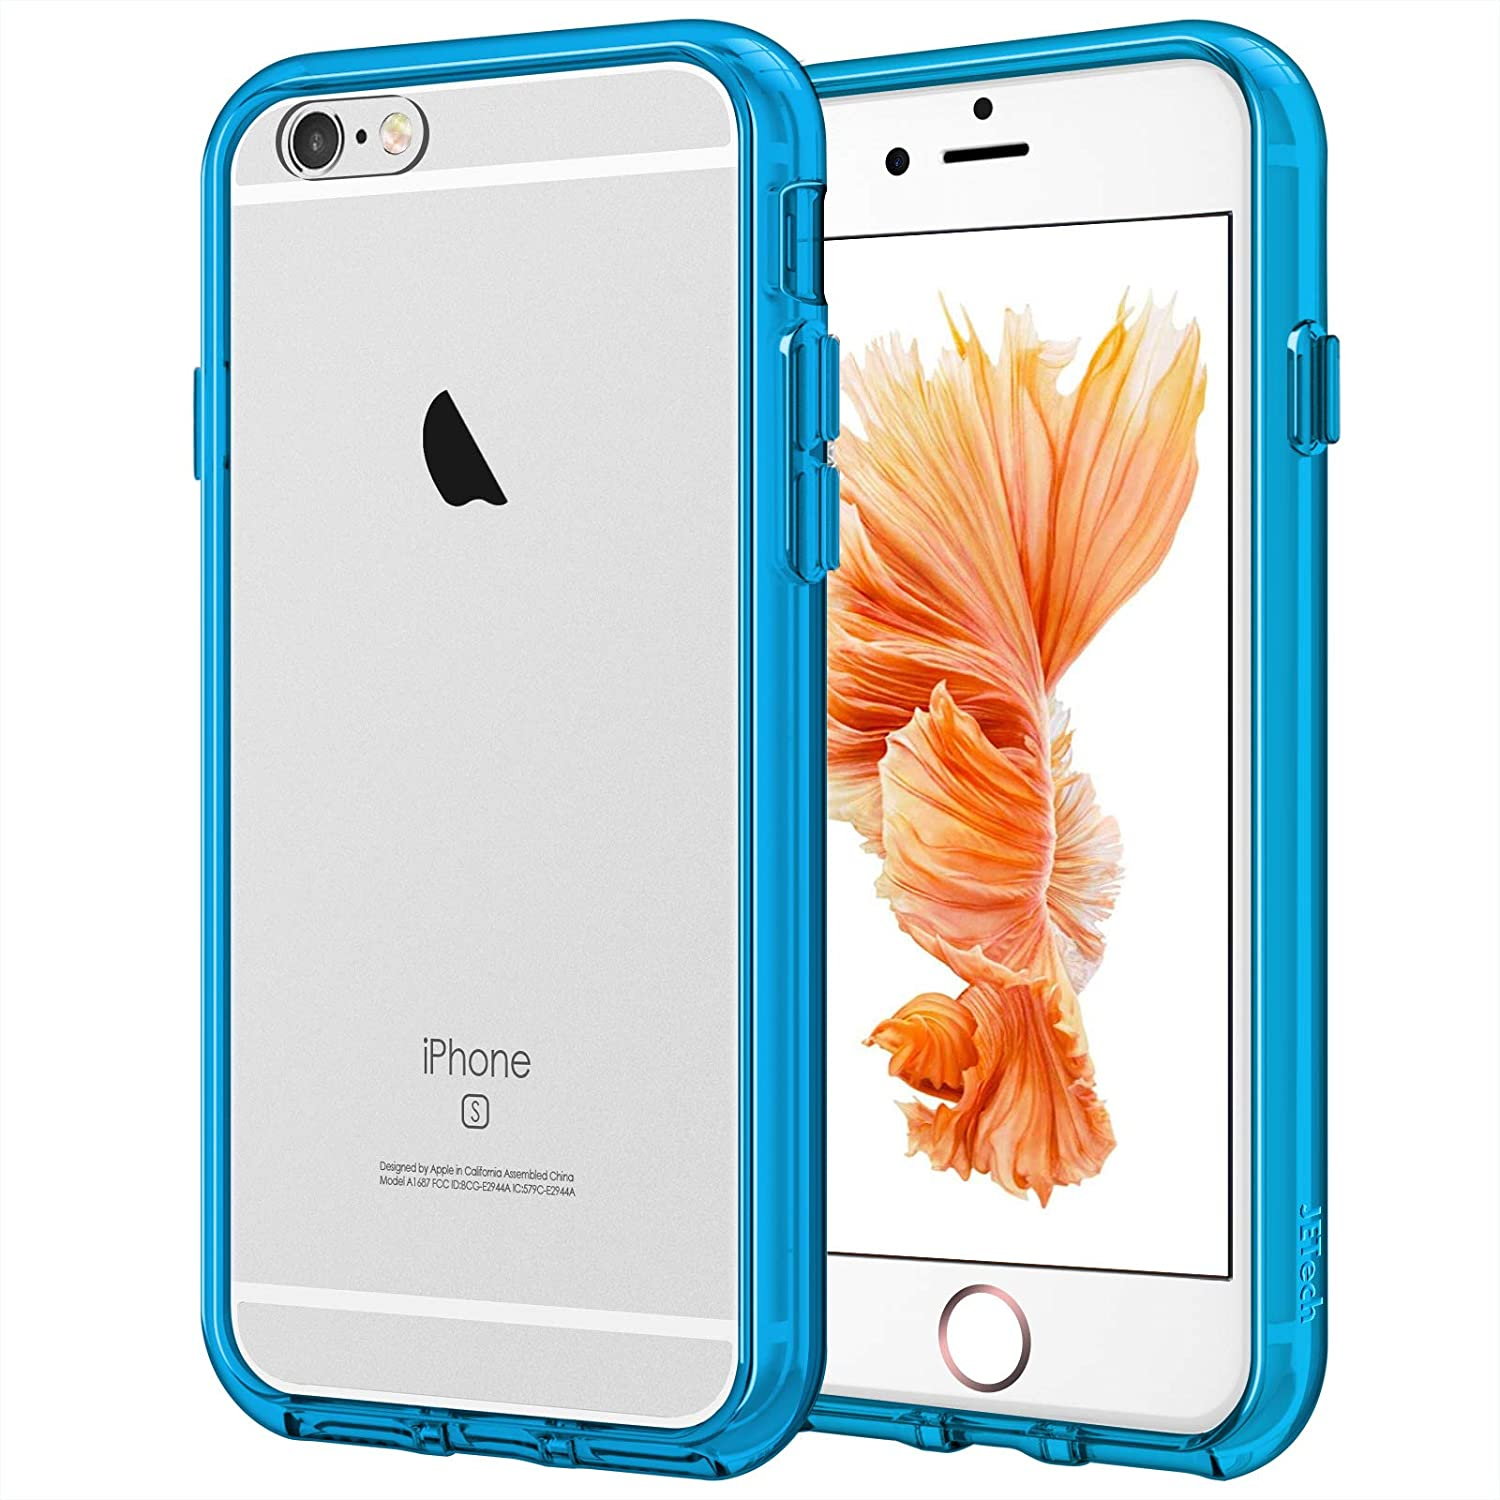 JETech Case for iPhone 6 and iPhone 6s, Shock-Absorption Bumper Cover, Anti-Scratch Clear Back (Blue)